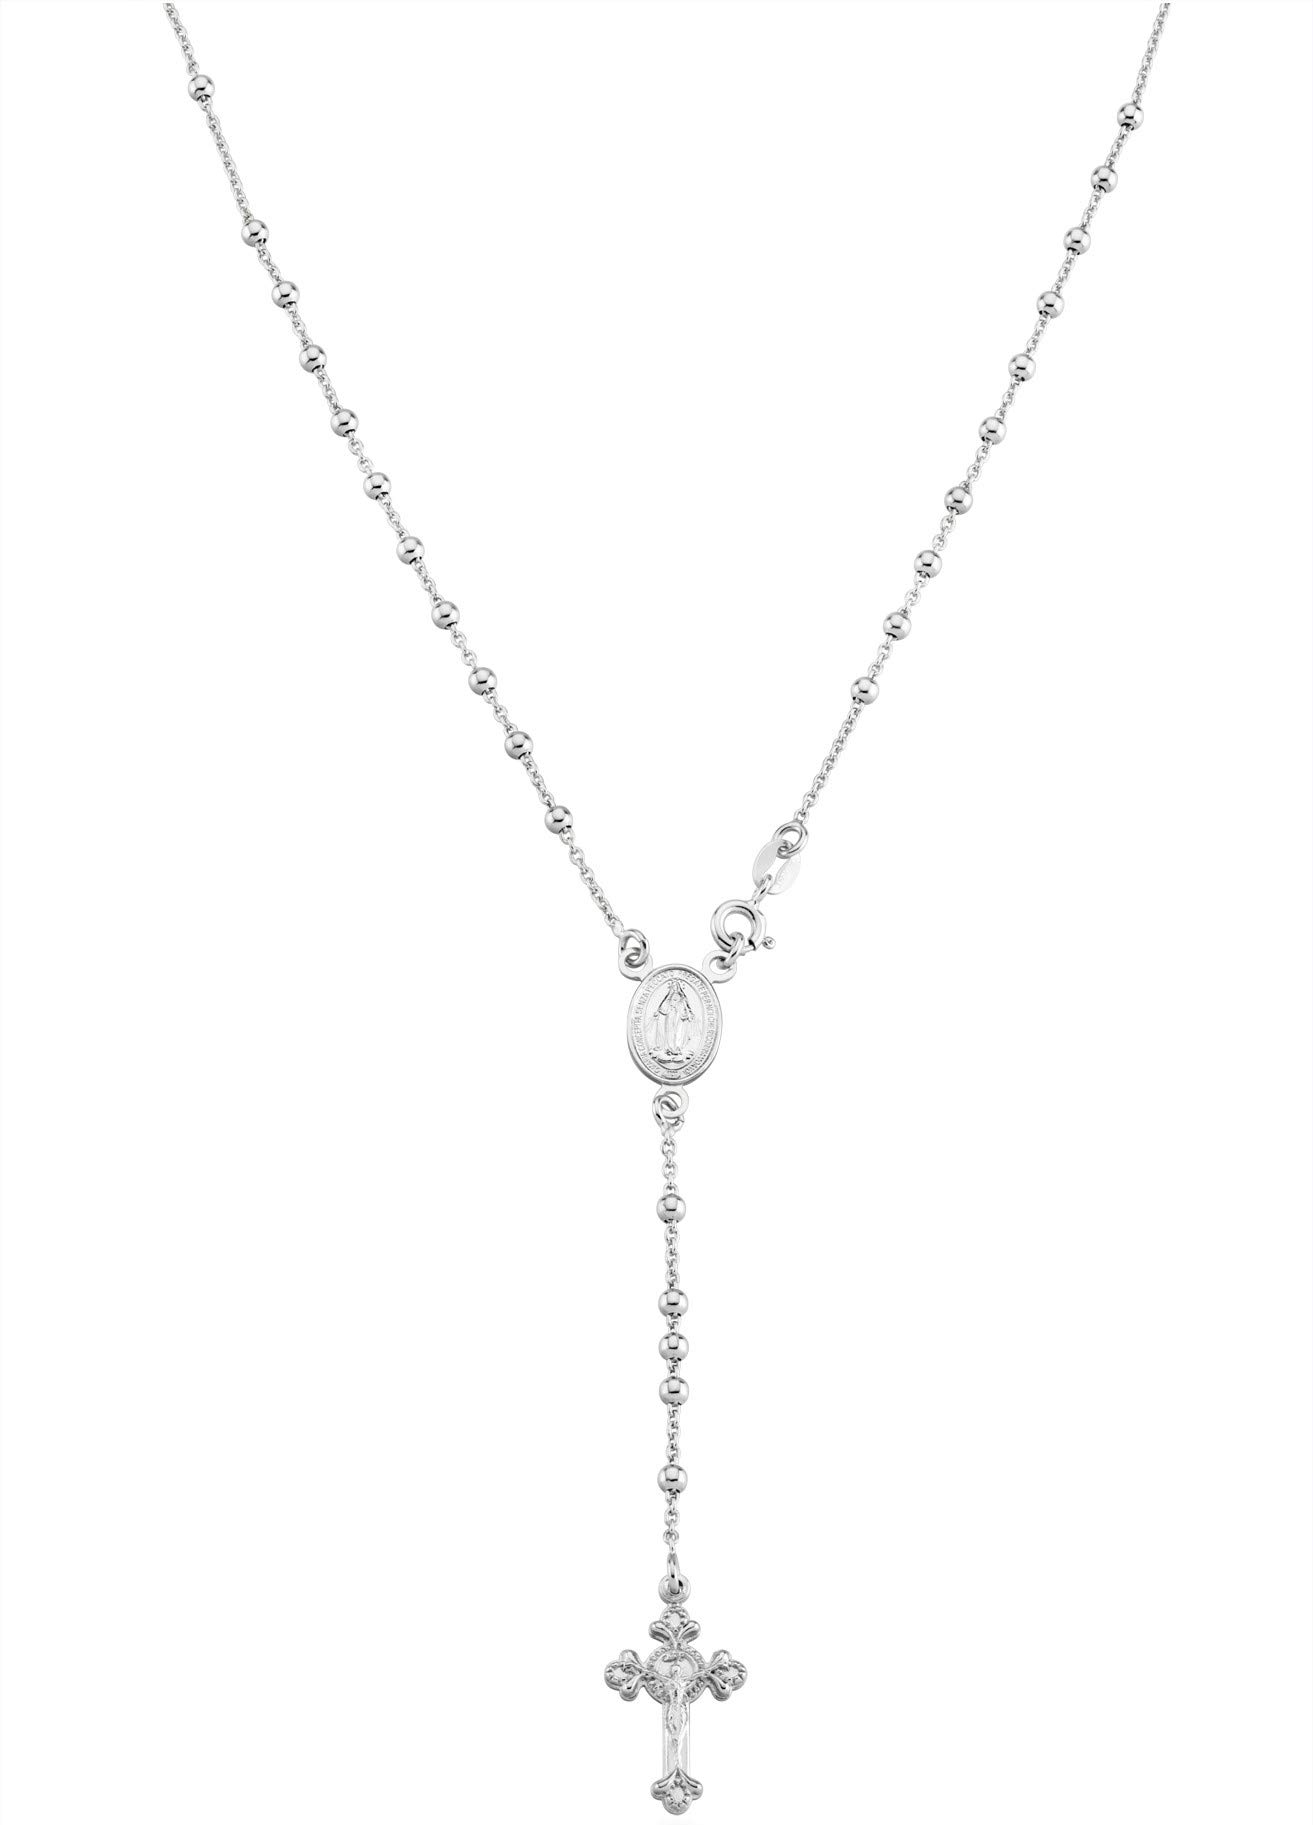 Miabella 925 Sterling Silver Italian Rosary Bead Cross Y Necklace Chain for Women Men 20 Inch